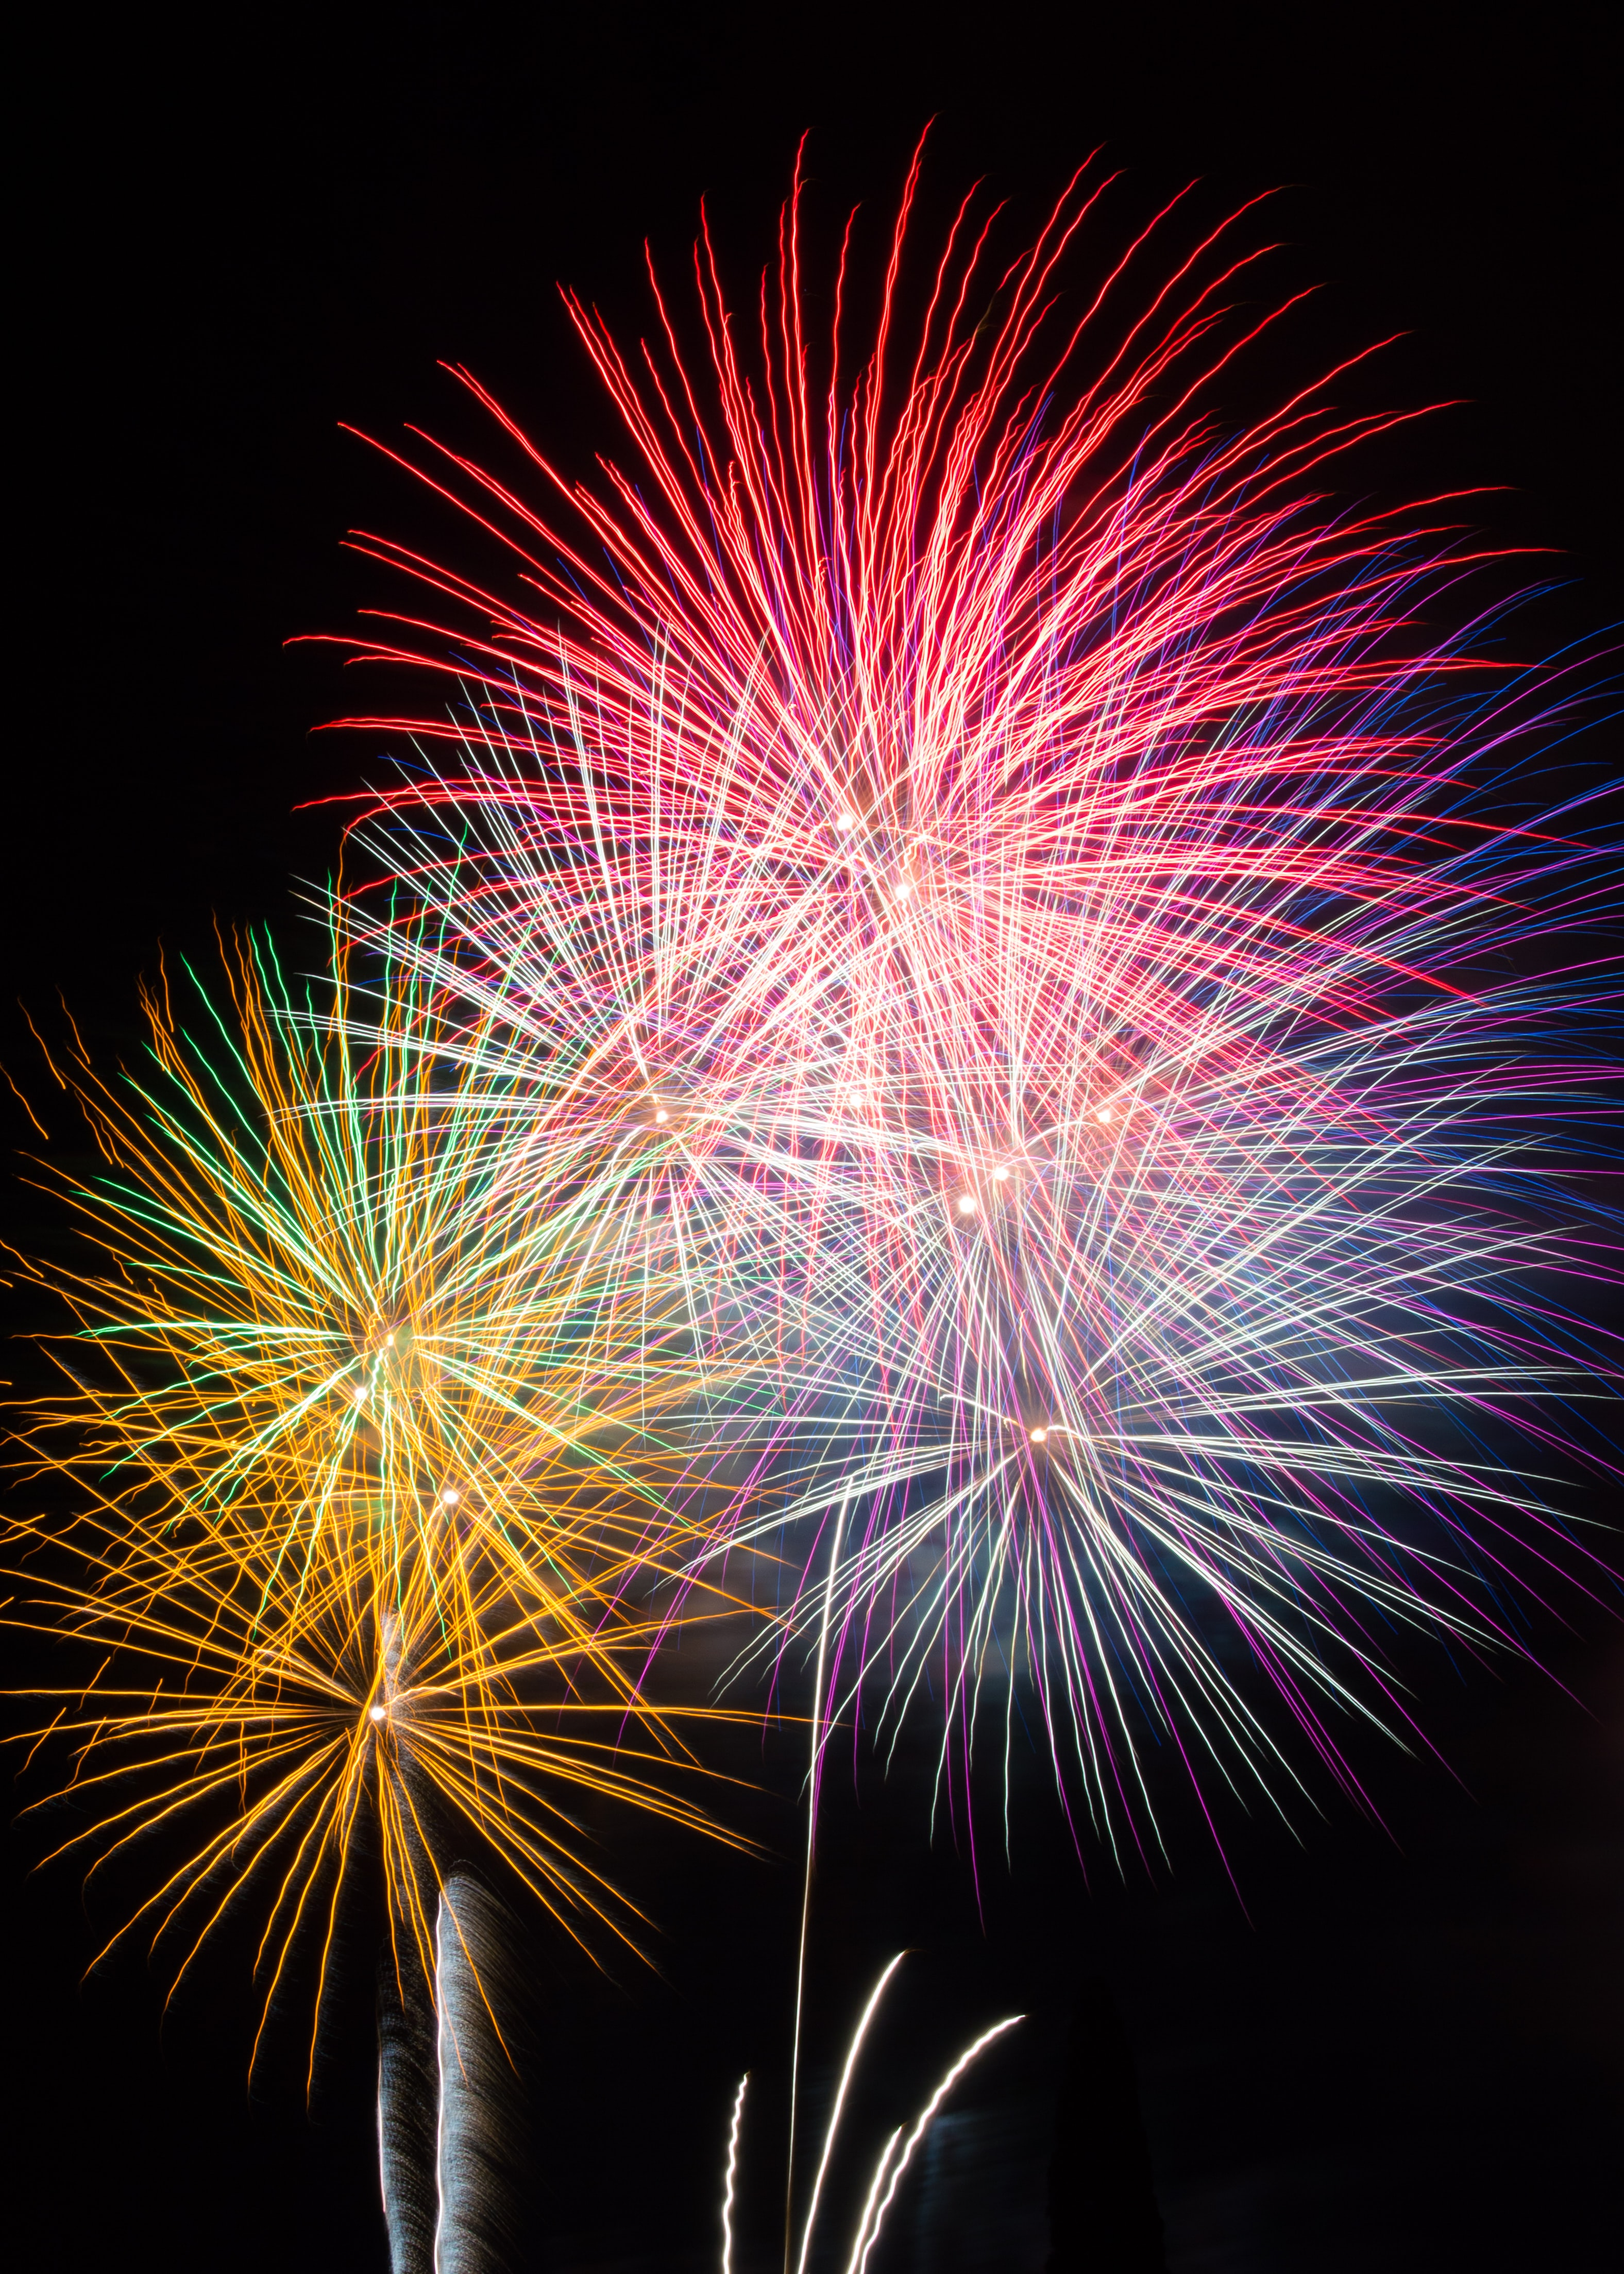 71366 download wallpaper Holidays, Night, Sparks, Multicolored, Motley, Holiday, Fireworks, Firework screensavers and pictures for free